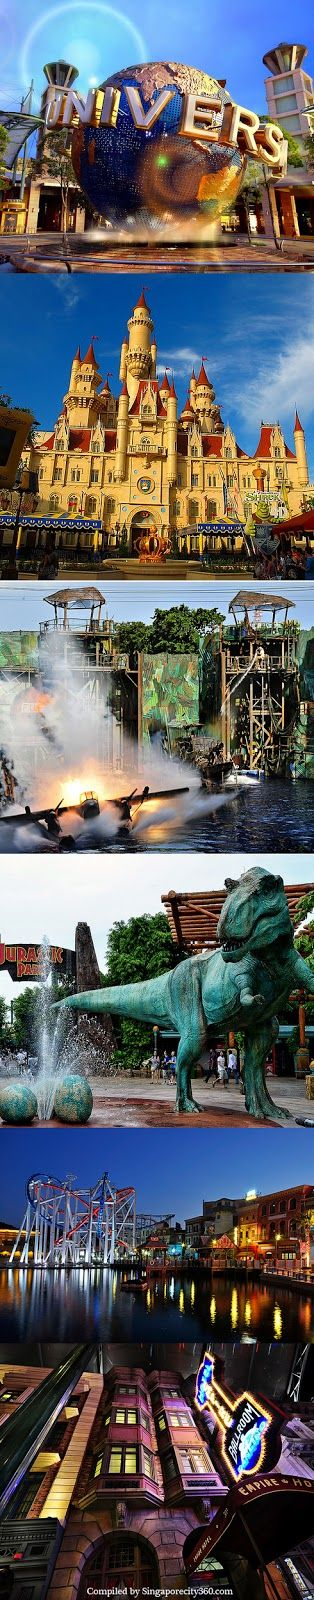 Visited Universal Studios Singapore by my own means with my family. <3 Thank you Lord!!!!